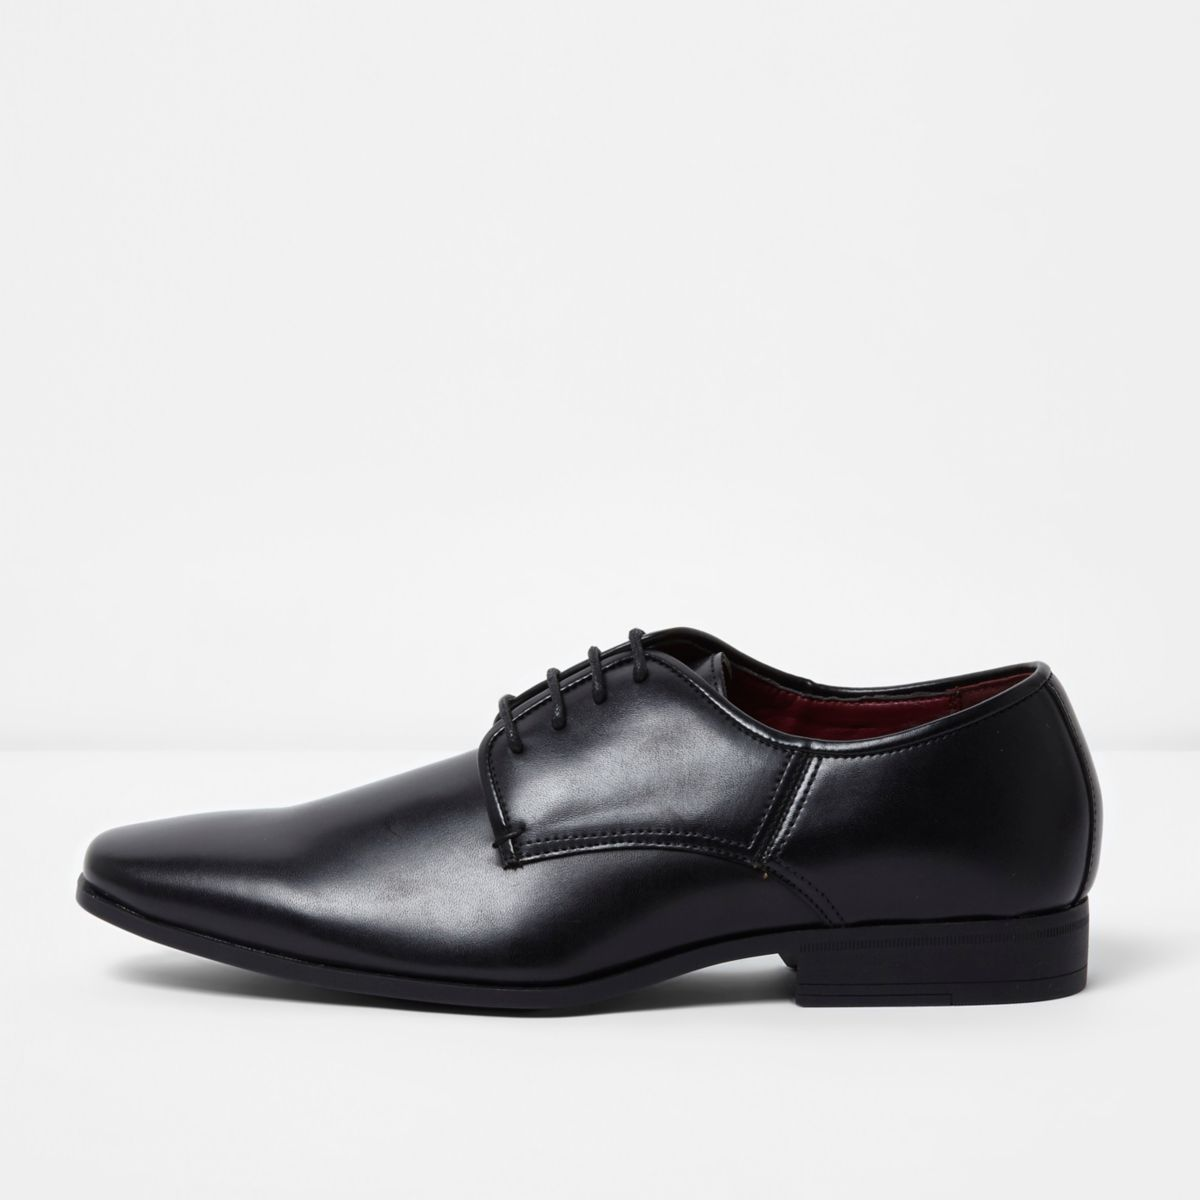 Black lace-up smart shoes